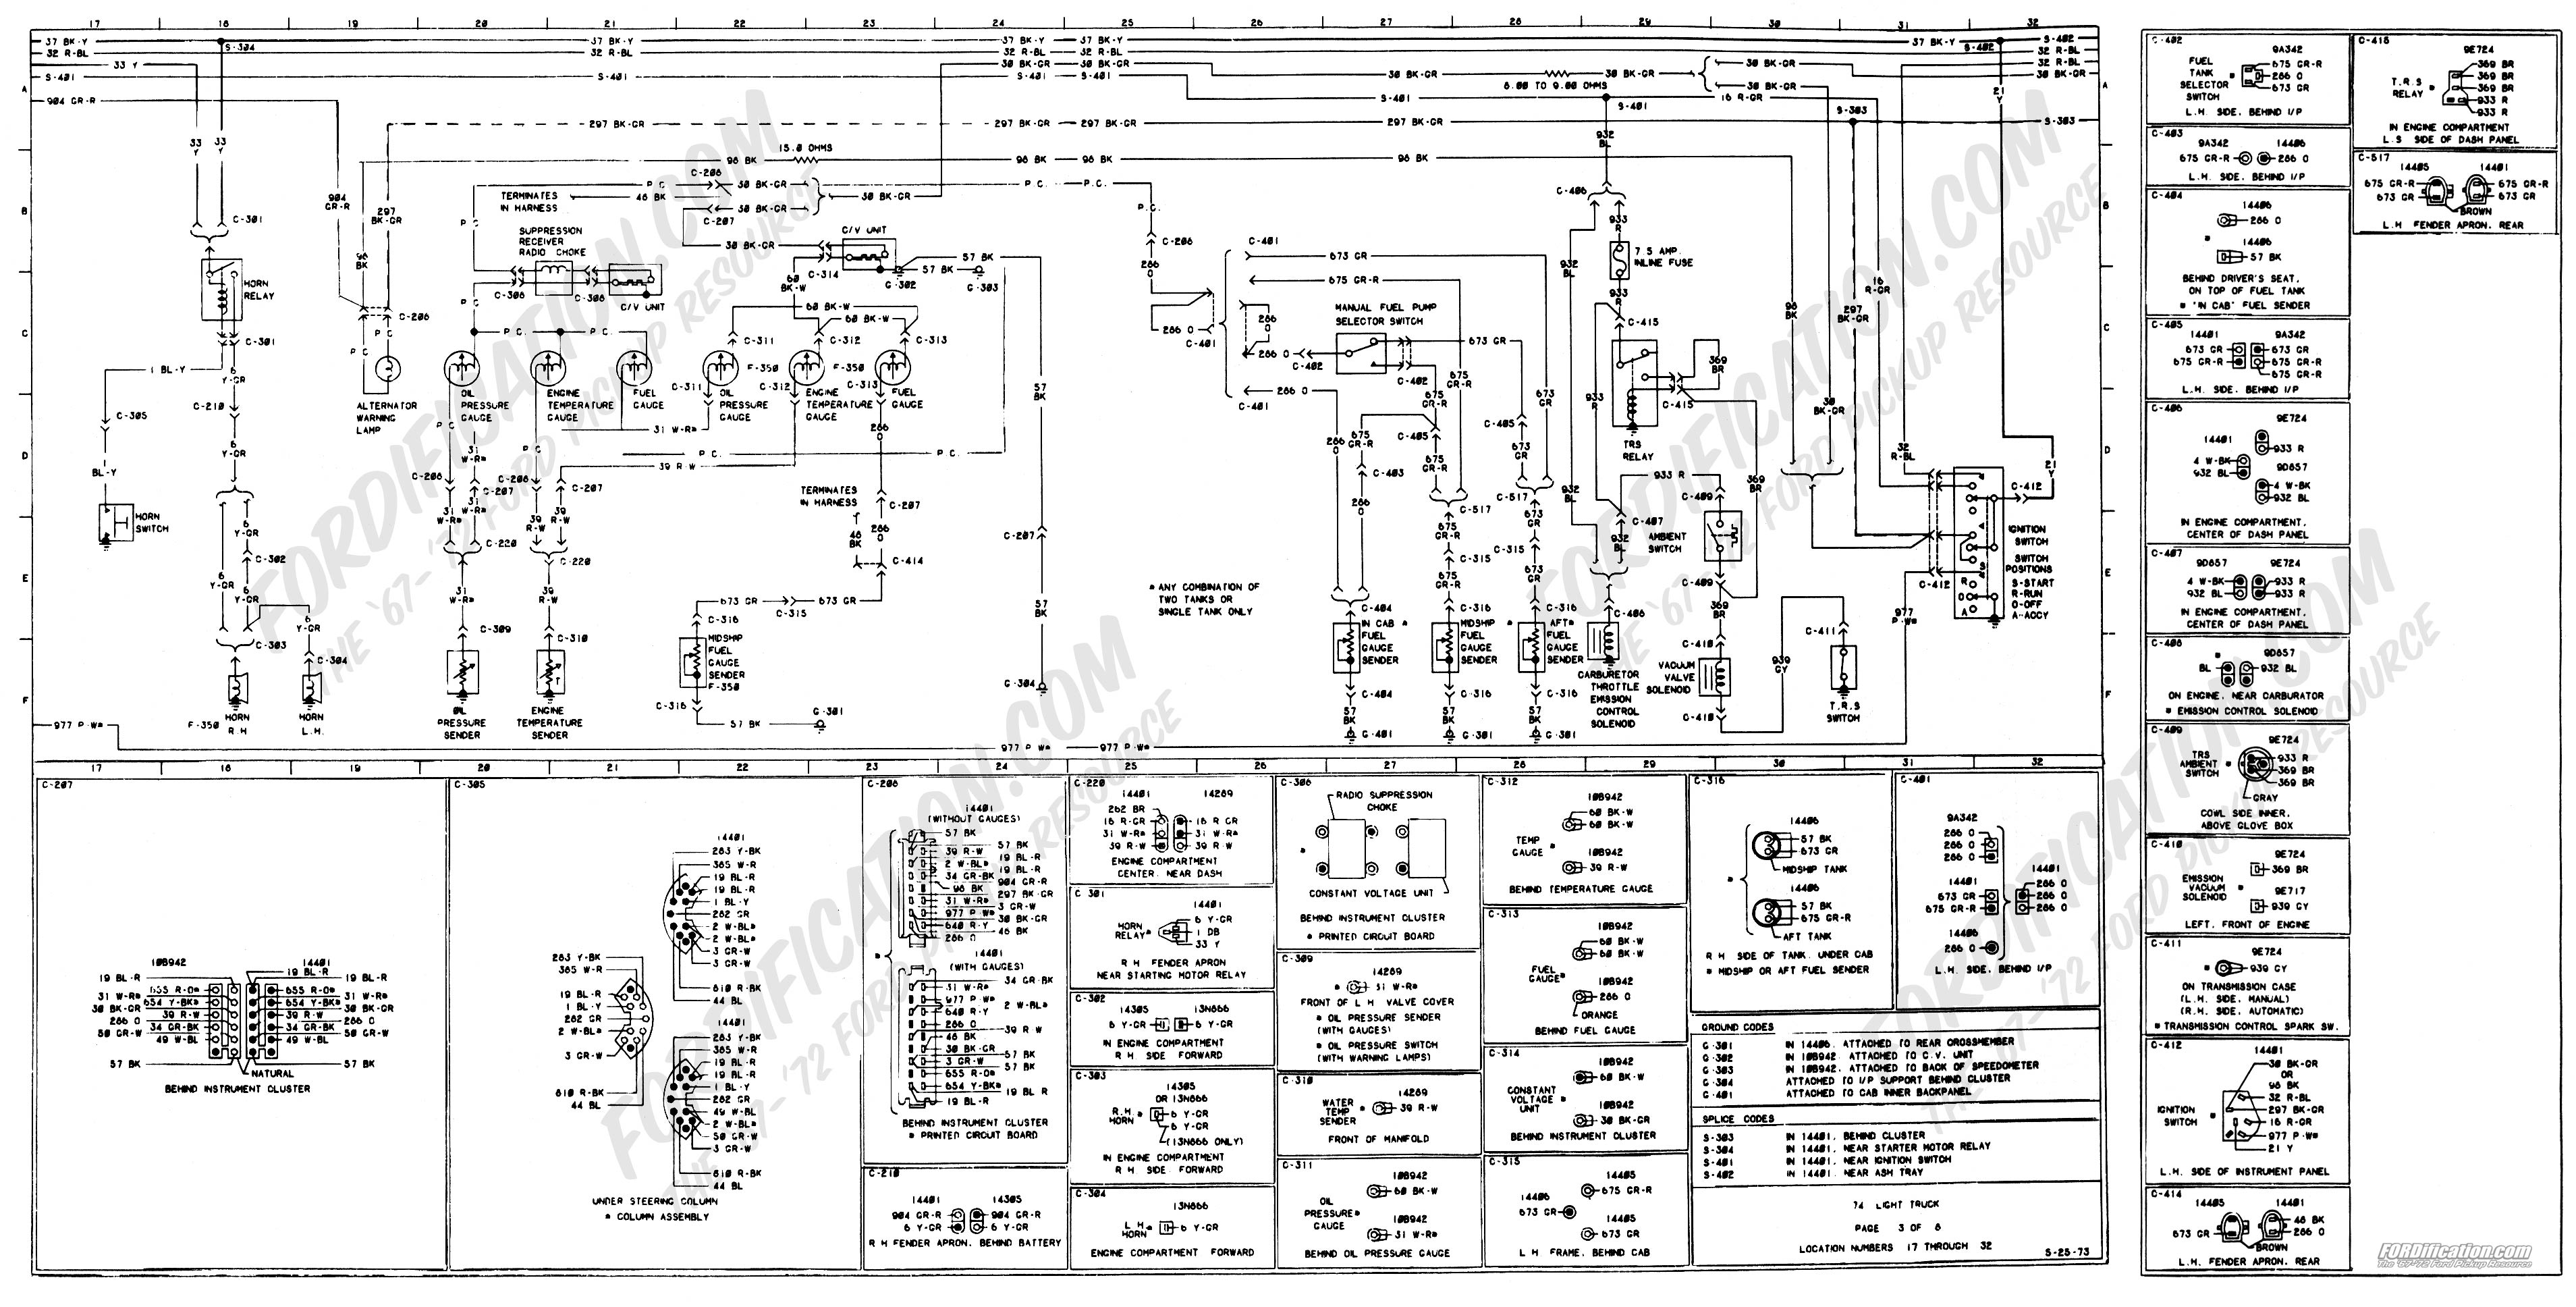 wiring_74master_3of8 1973 1979 ford truck wiring diagrams & schematics fordification net 1979 ford bronco fuse box diagram at edmiracle.co